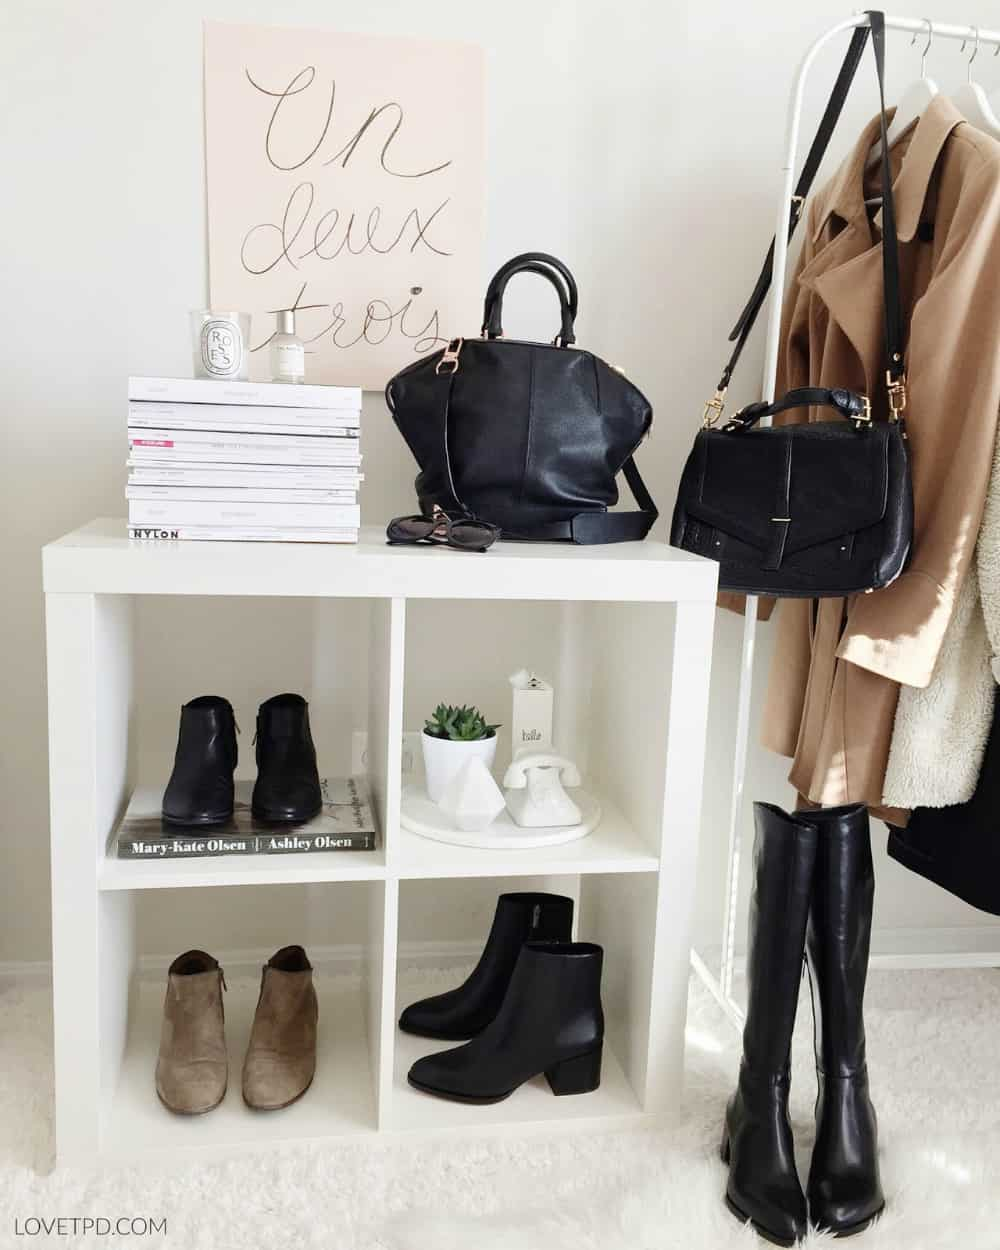 Cool shoe display storage